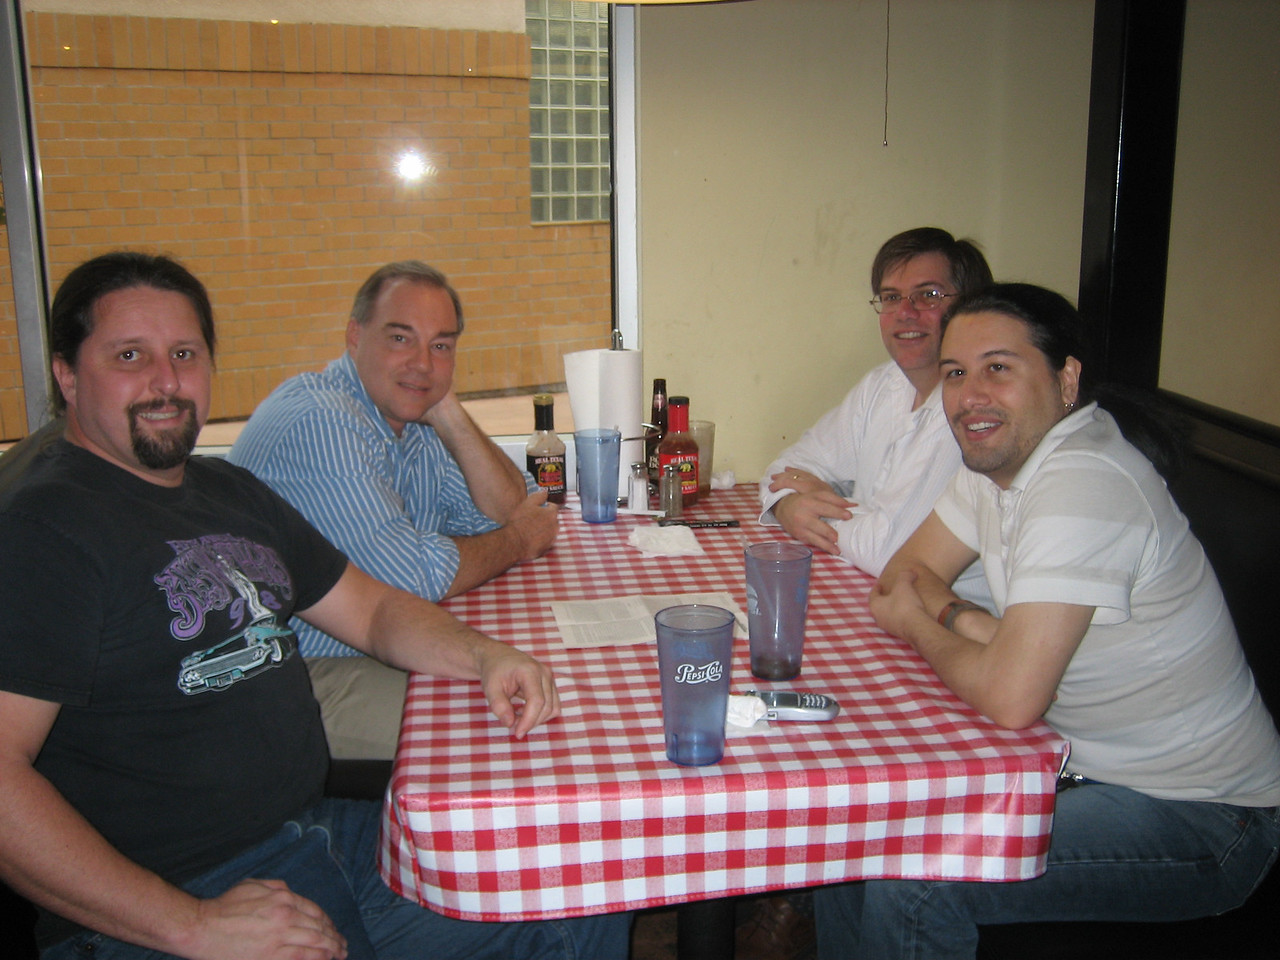 I had lunch with Warren Robinett (author of Adventure on the 2600, Rocky's Boots, co-founder of The Learning Company) recently along with my friends Jeff Buchanan (left front) and Chris Mayer (next to me).  Warren is incredibly brilliant and works nearby occasionally.